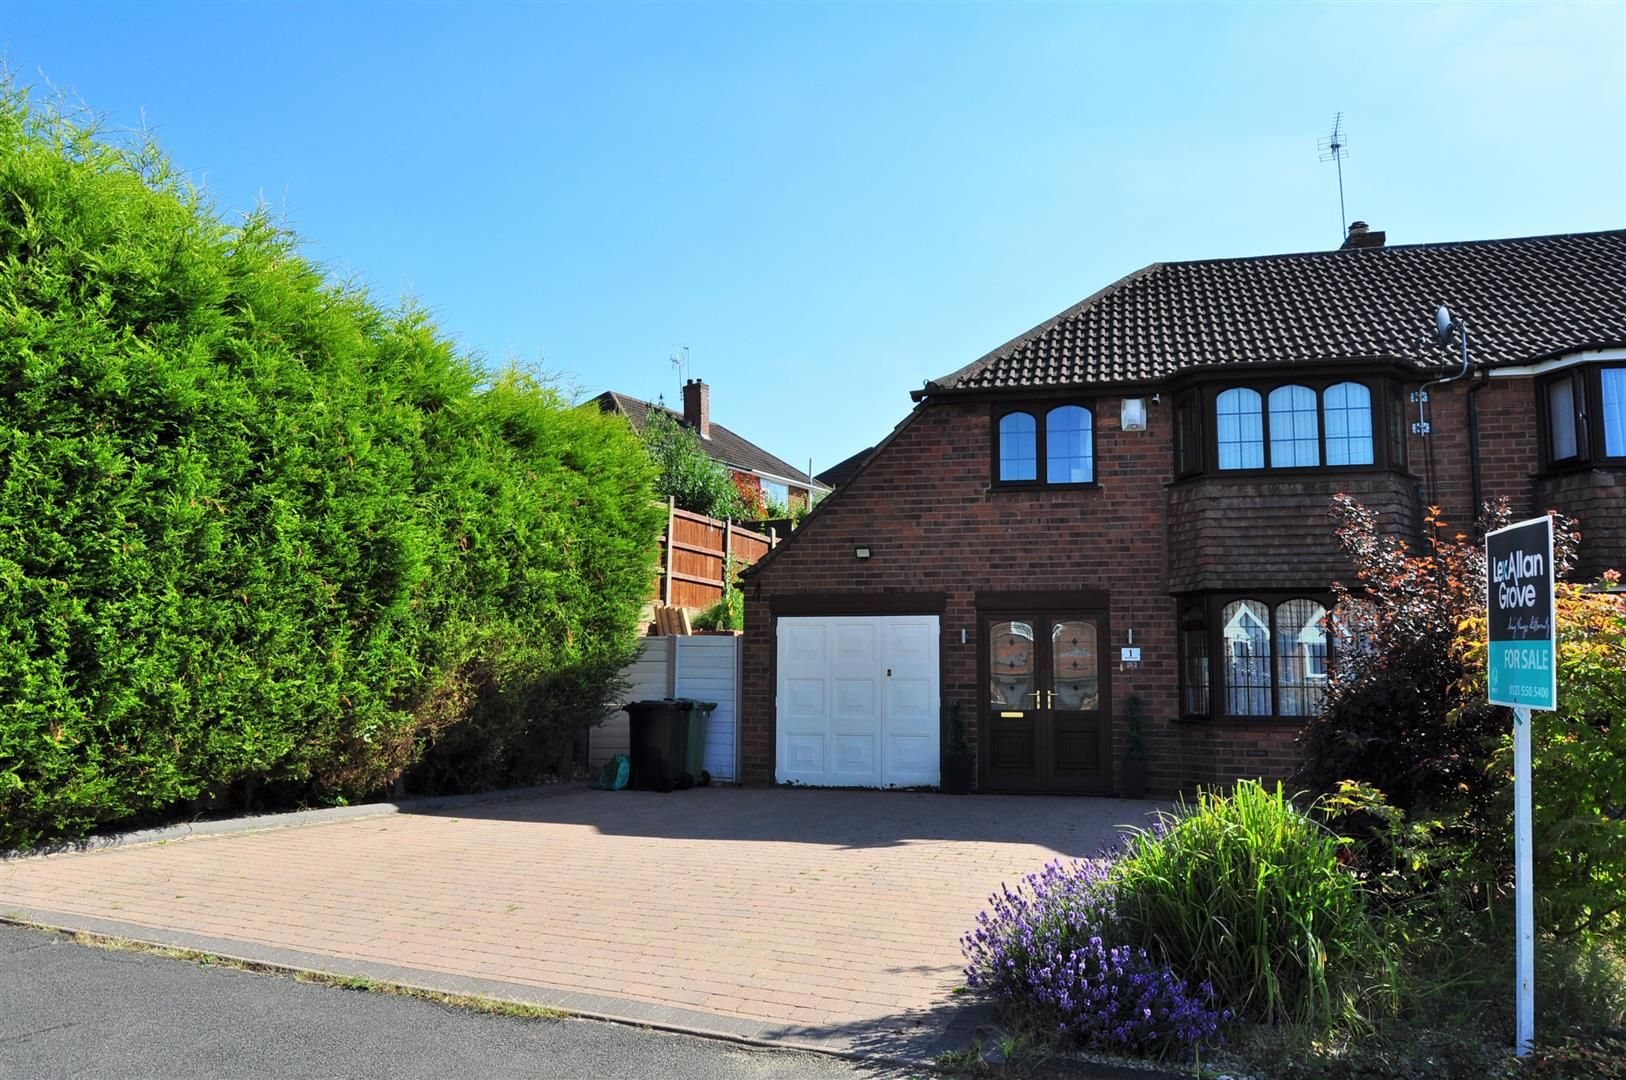 3 bed semi-detached for sale in Hasbury 1